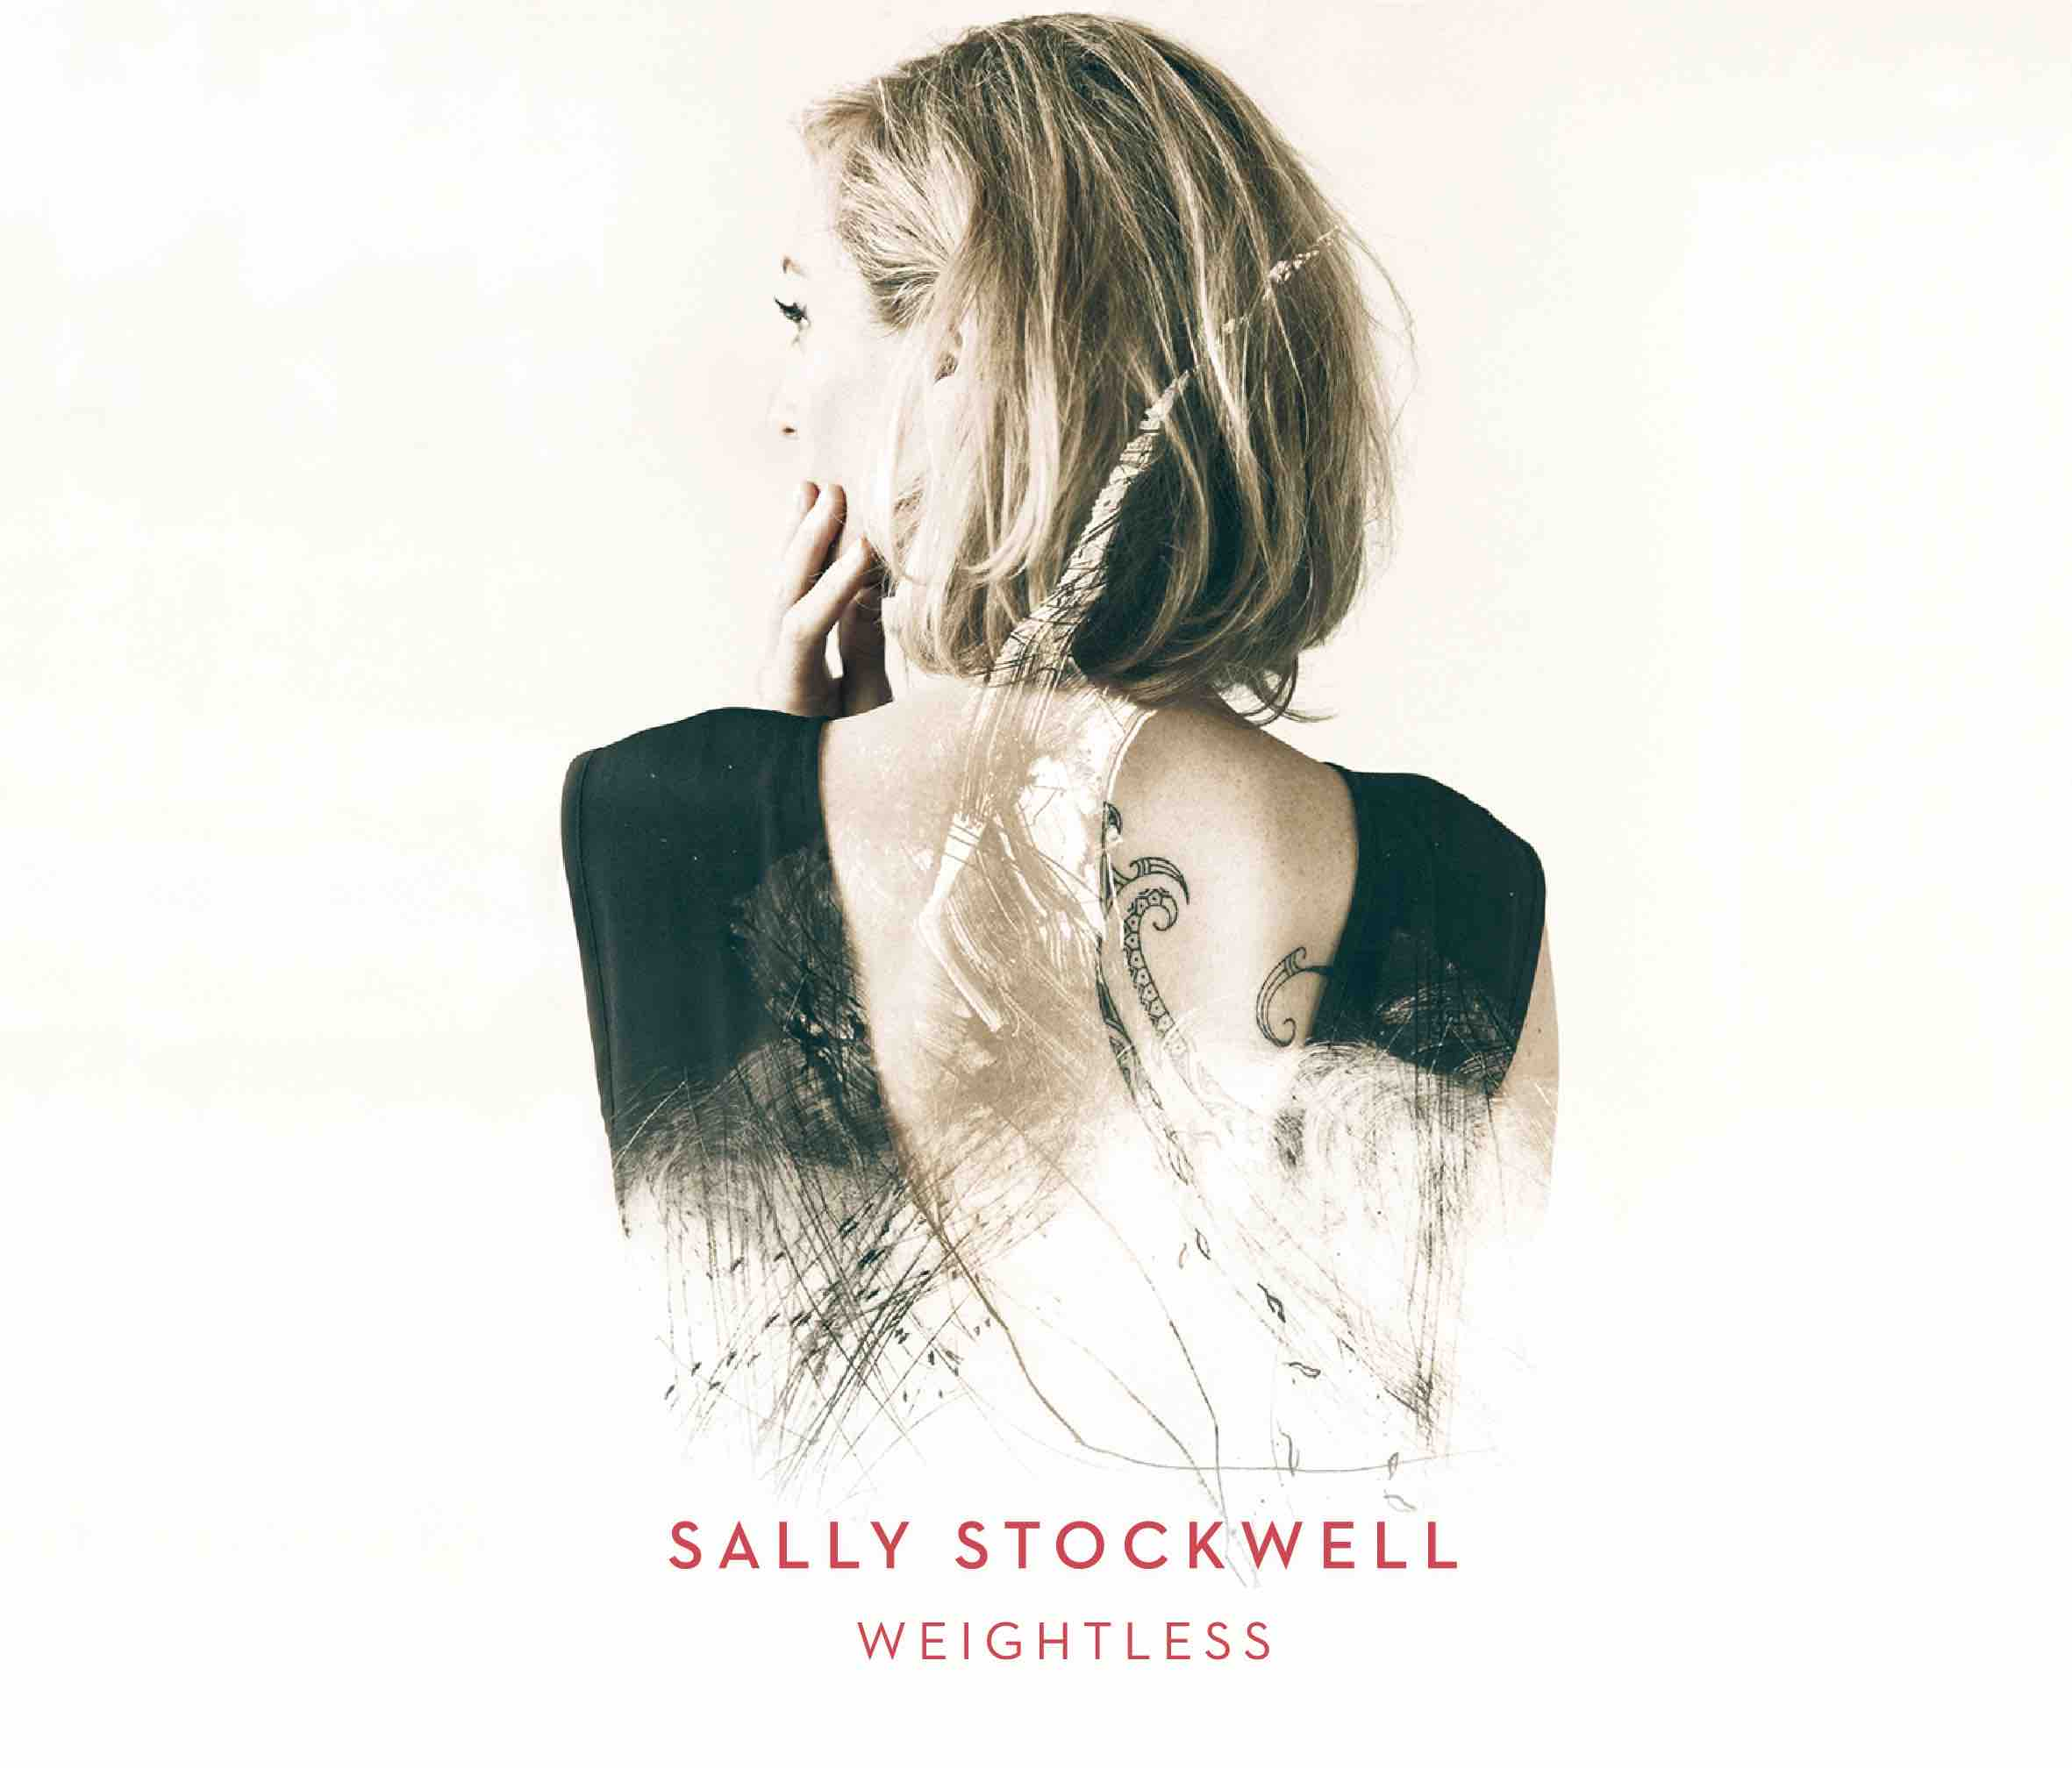 Sally Stockwell – Weightless (Ellamy) CD REVIEW